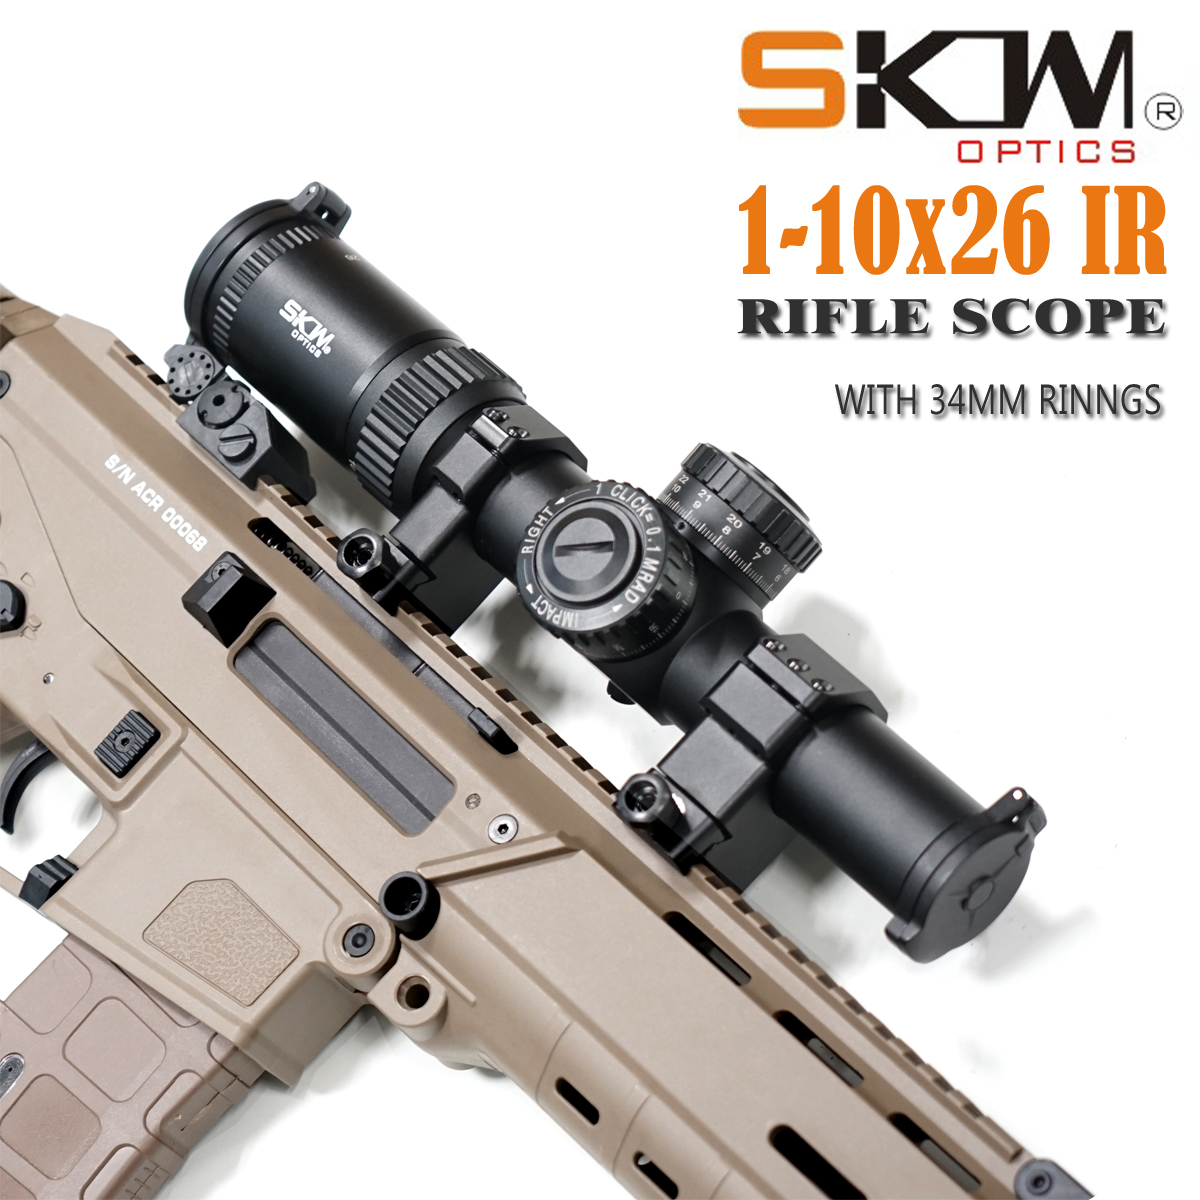 SKWoptics  Hunting 1-10x26 34mm Rifle Scopes With 34mm CNC Rings Military Tactical Reticle Shock Proof Riflescopes